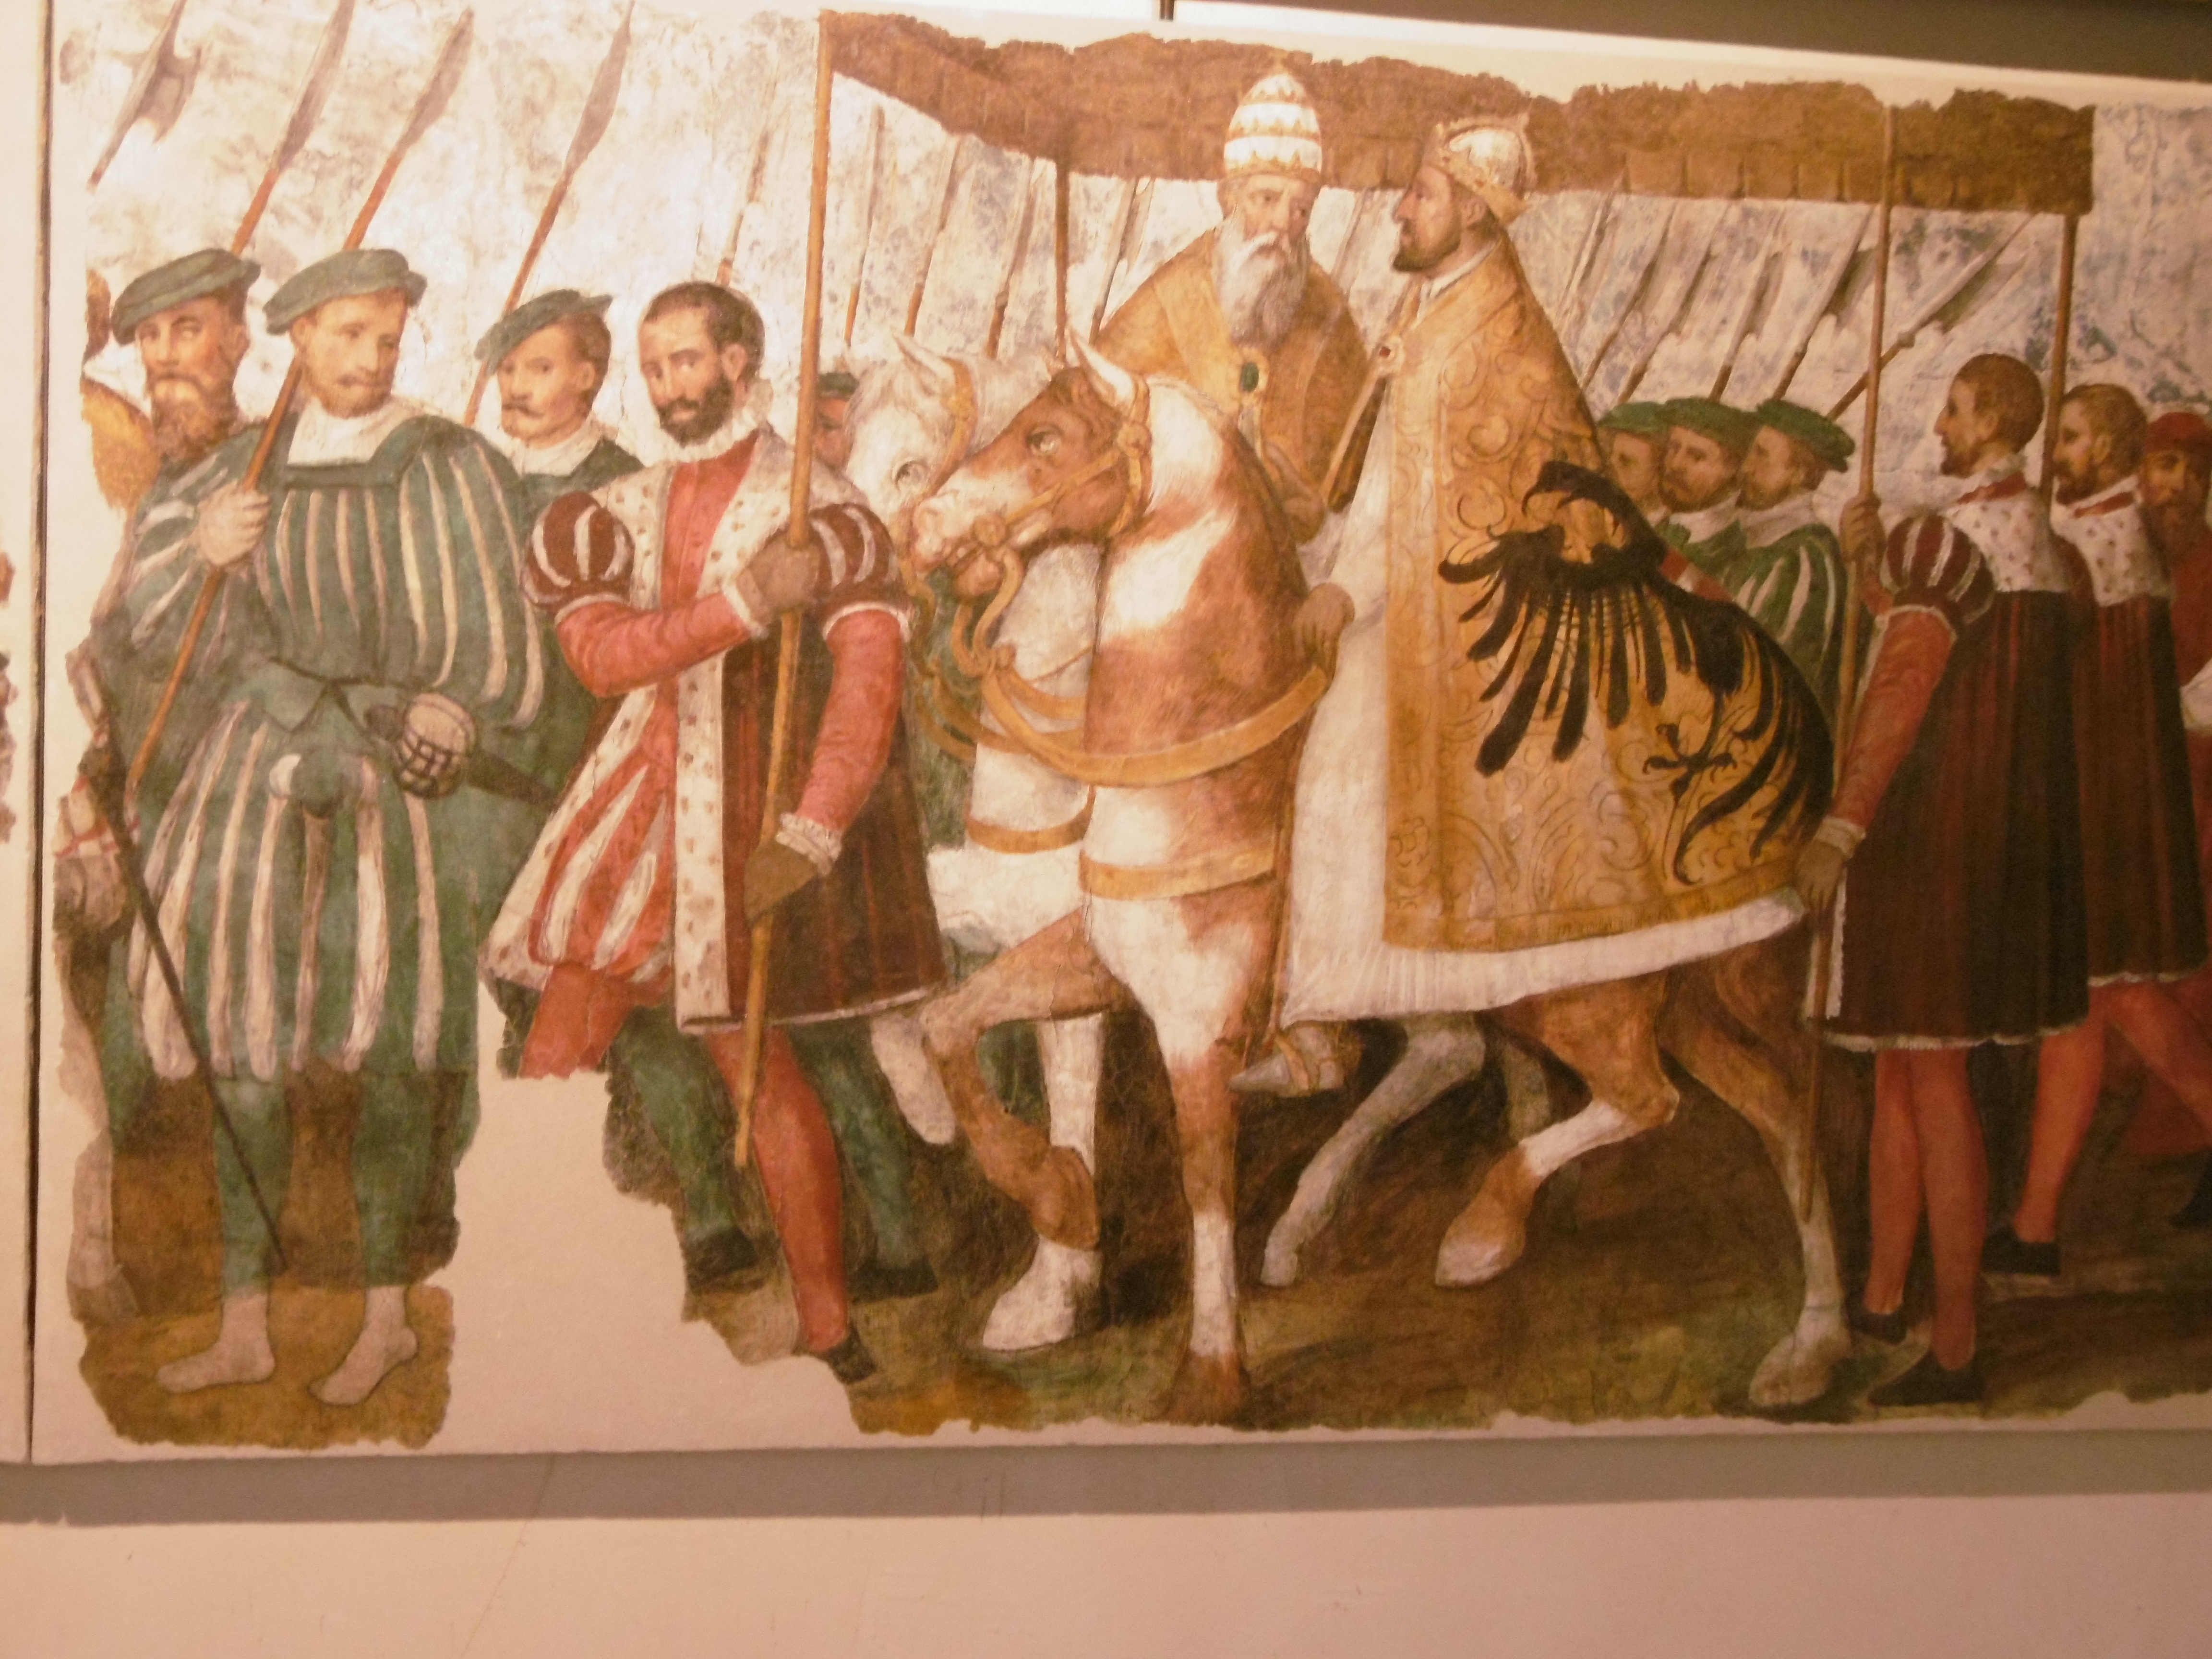 A parade of men in sixteenth-century clothing, with two horsemen in cloth-of-gold clothing under a canopy held aloft on poles